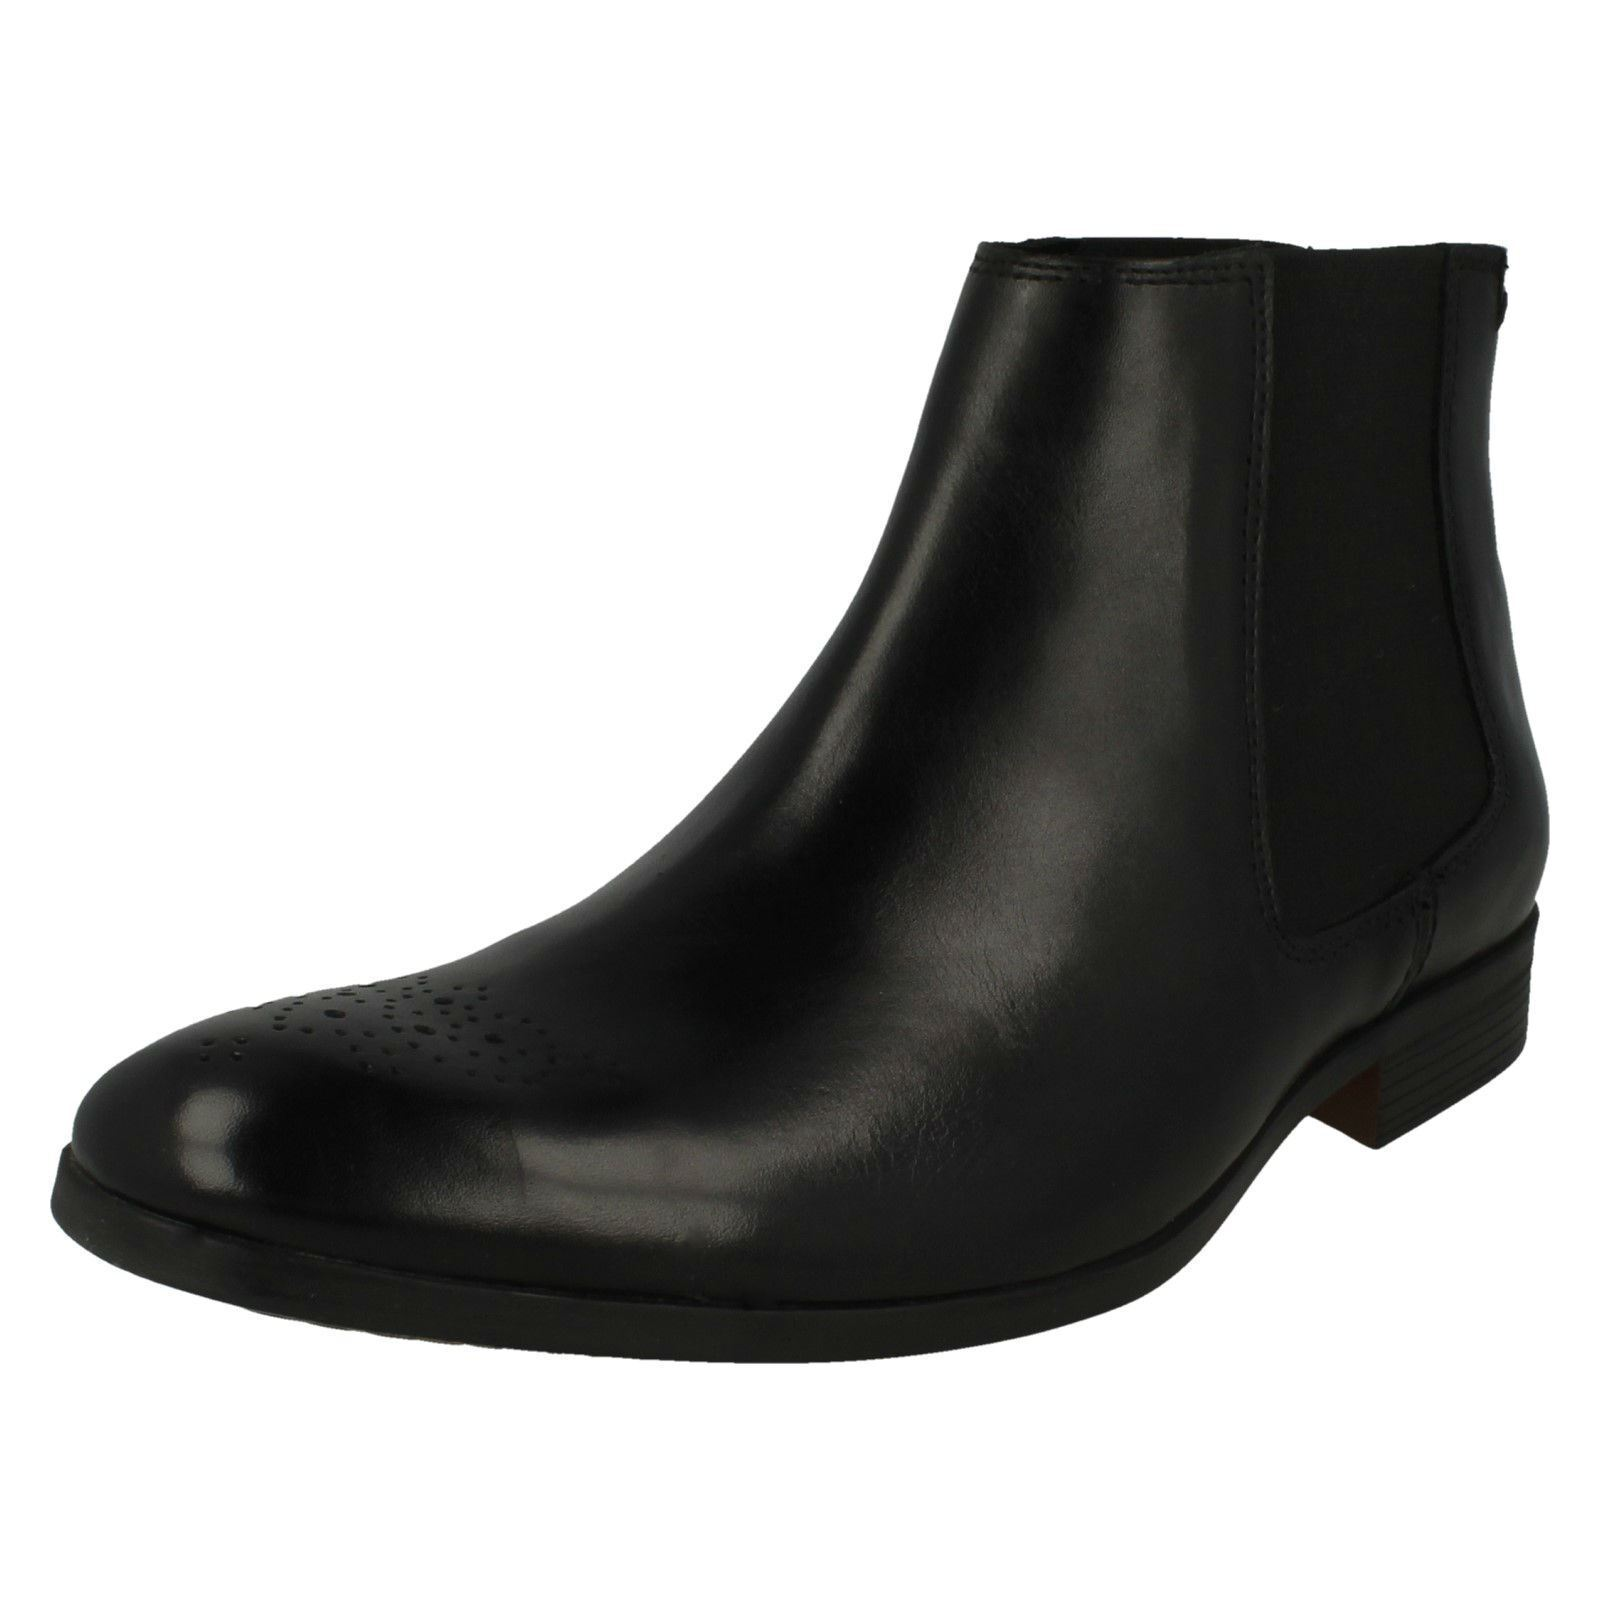 Mens Clarks Brogue Detail Slip On Leather Smart Chelsea Boots Gilmore Chelsea